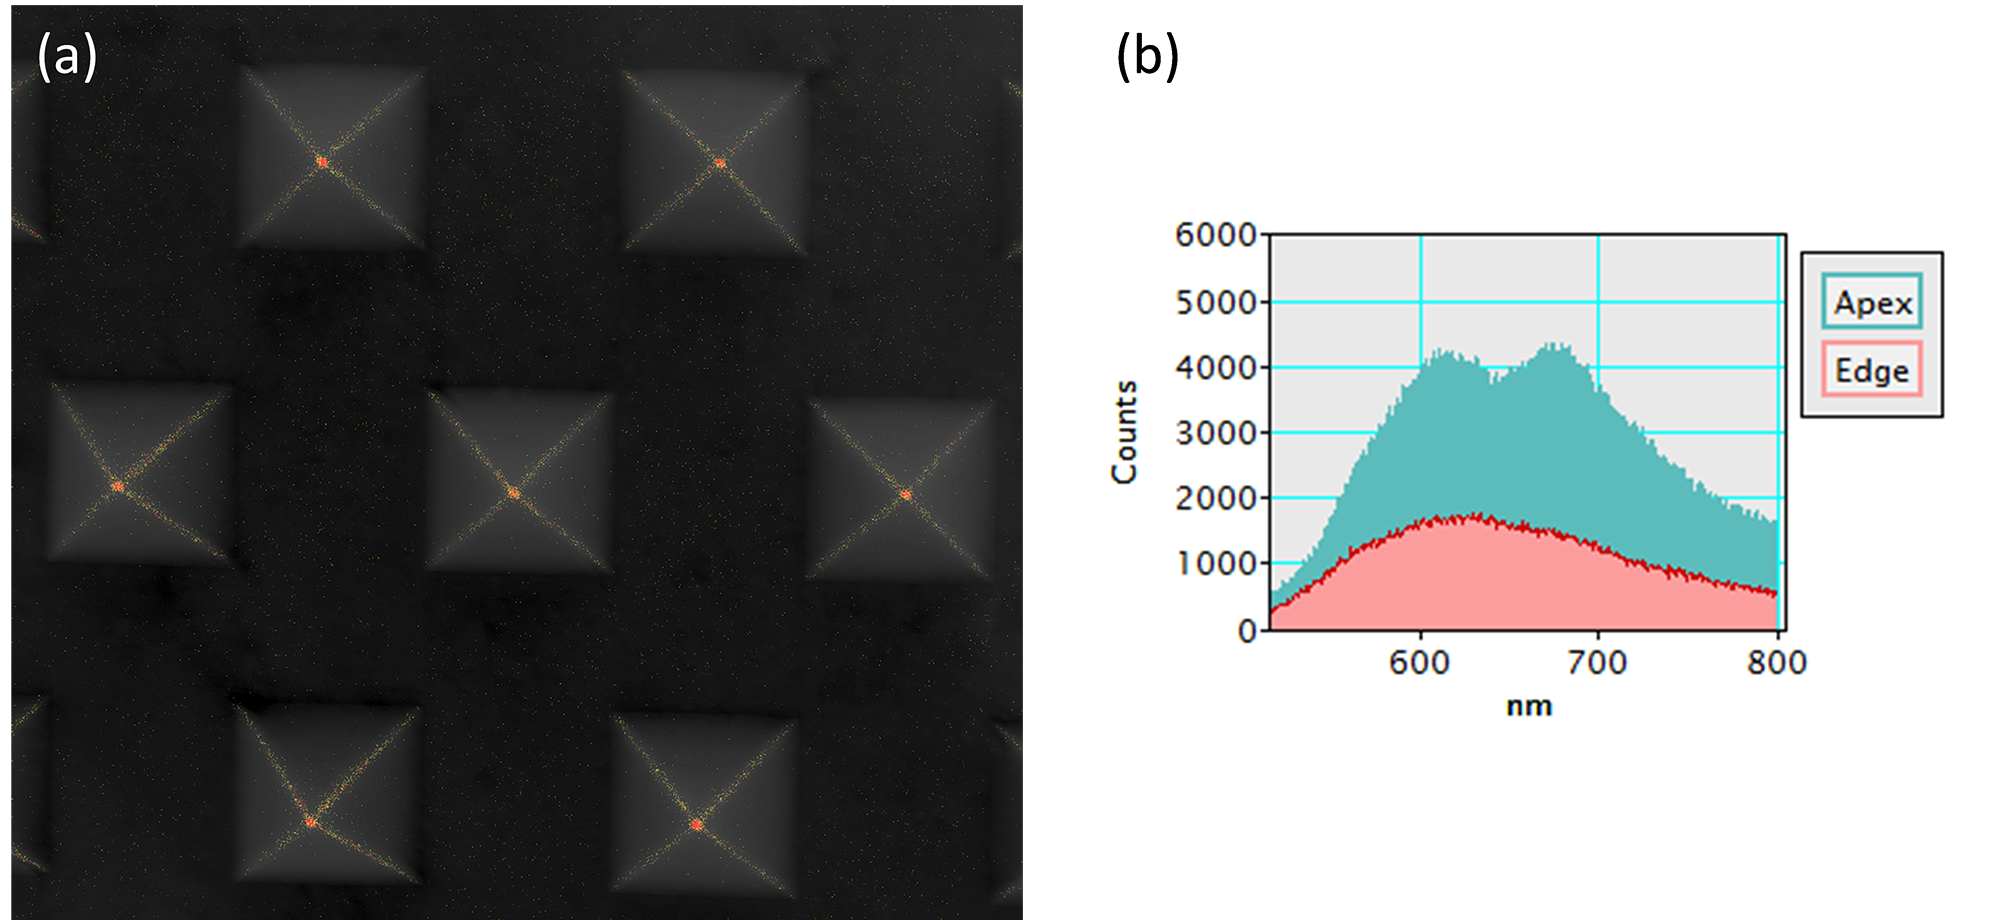 Surface plasmon resonance modes